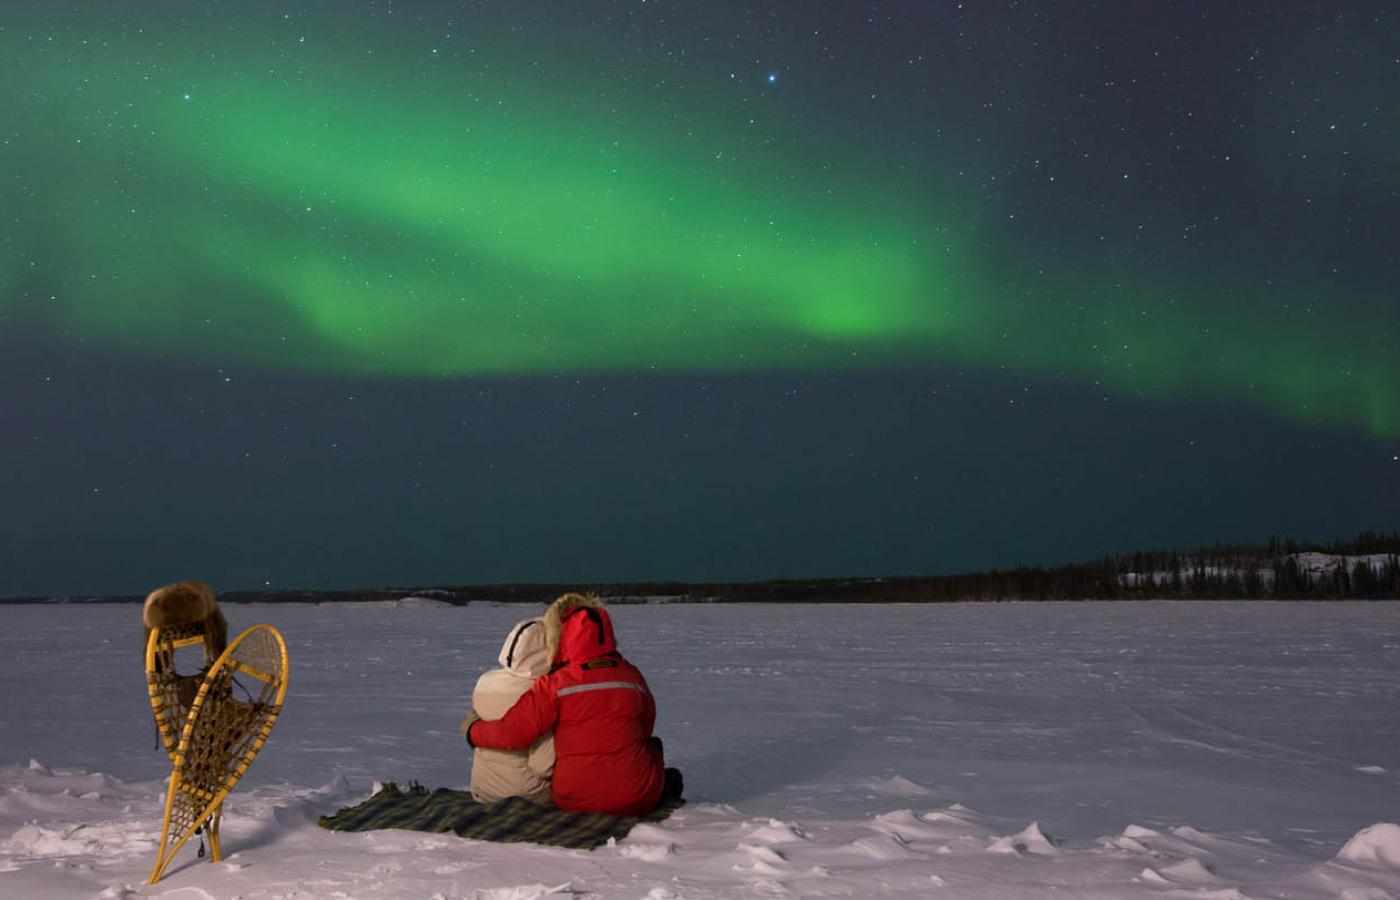 A couple celebrates their love under the Northern Lights in the Northwest Territories